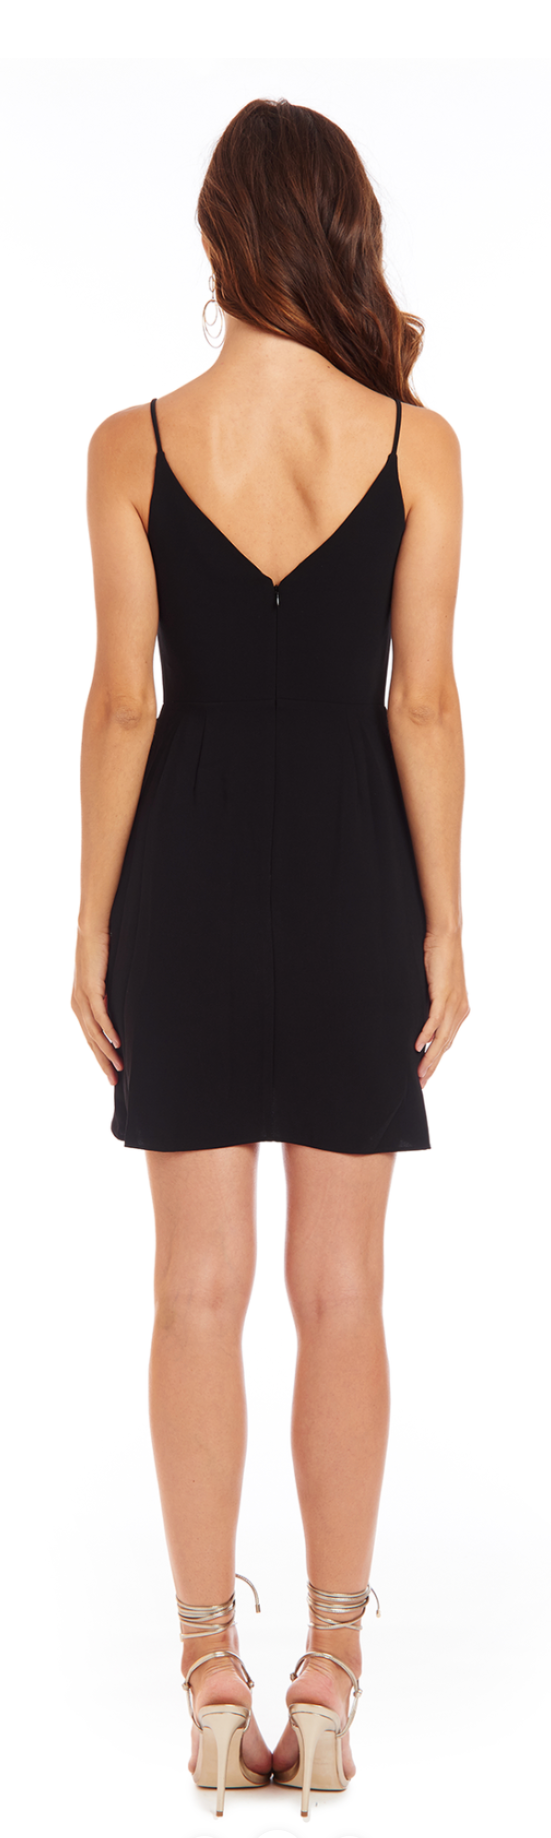 Amanda  Uprichard Giovanni Dress in Black